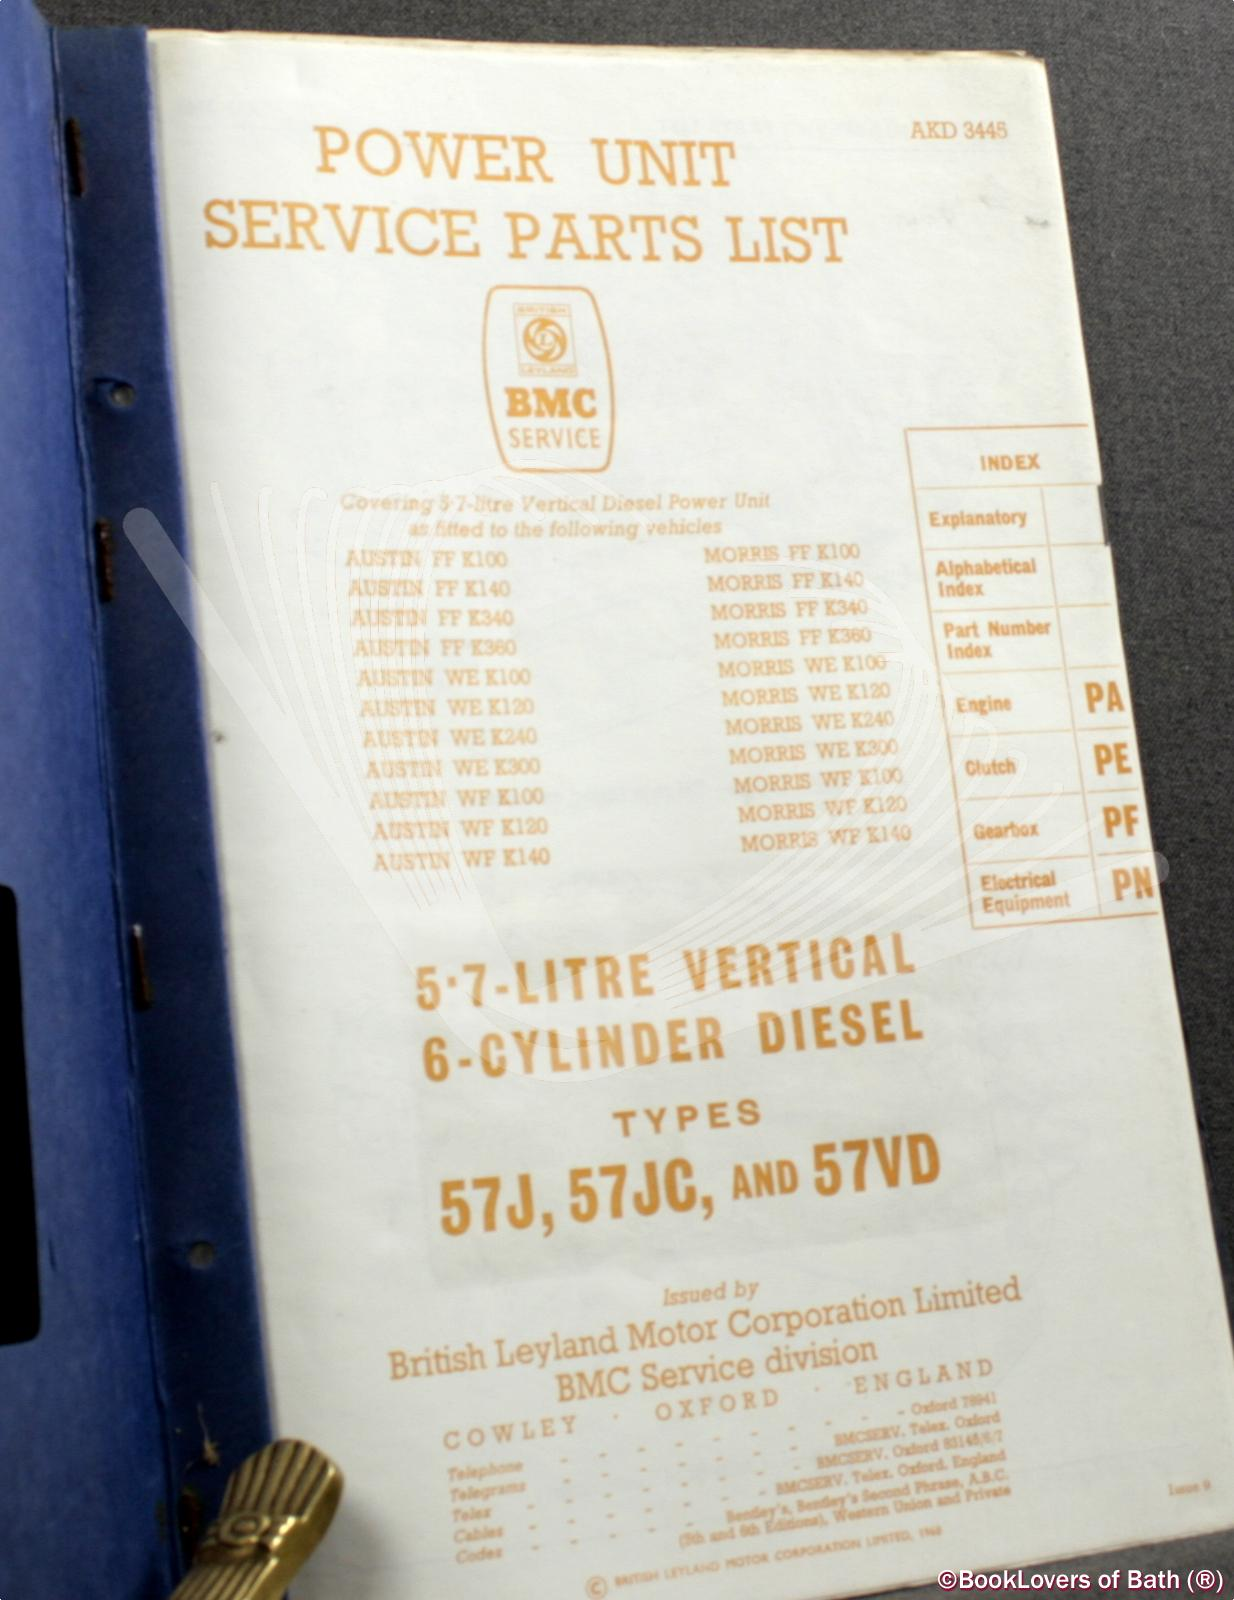 Power Unit Service Parts List 5.7-Litre Vertical 6-Cylinder Diese